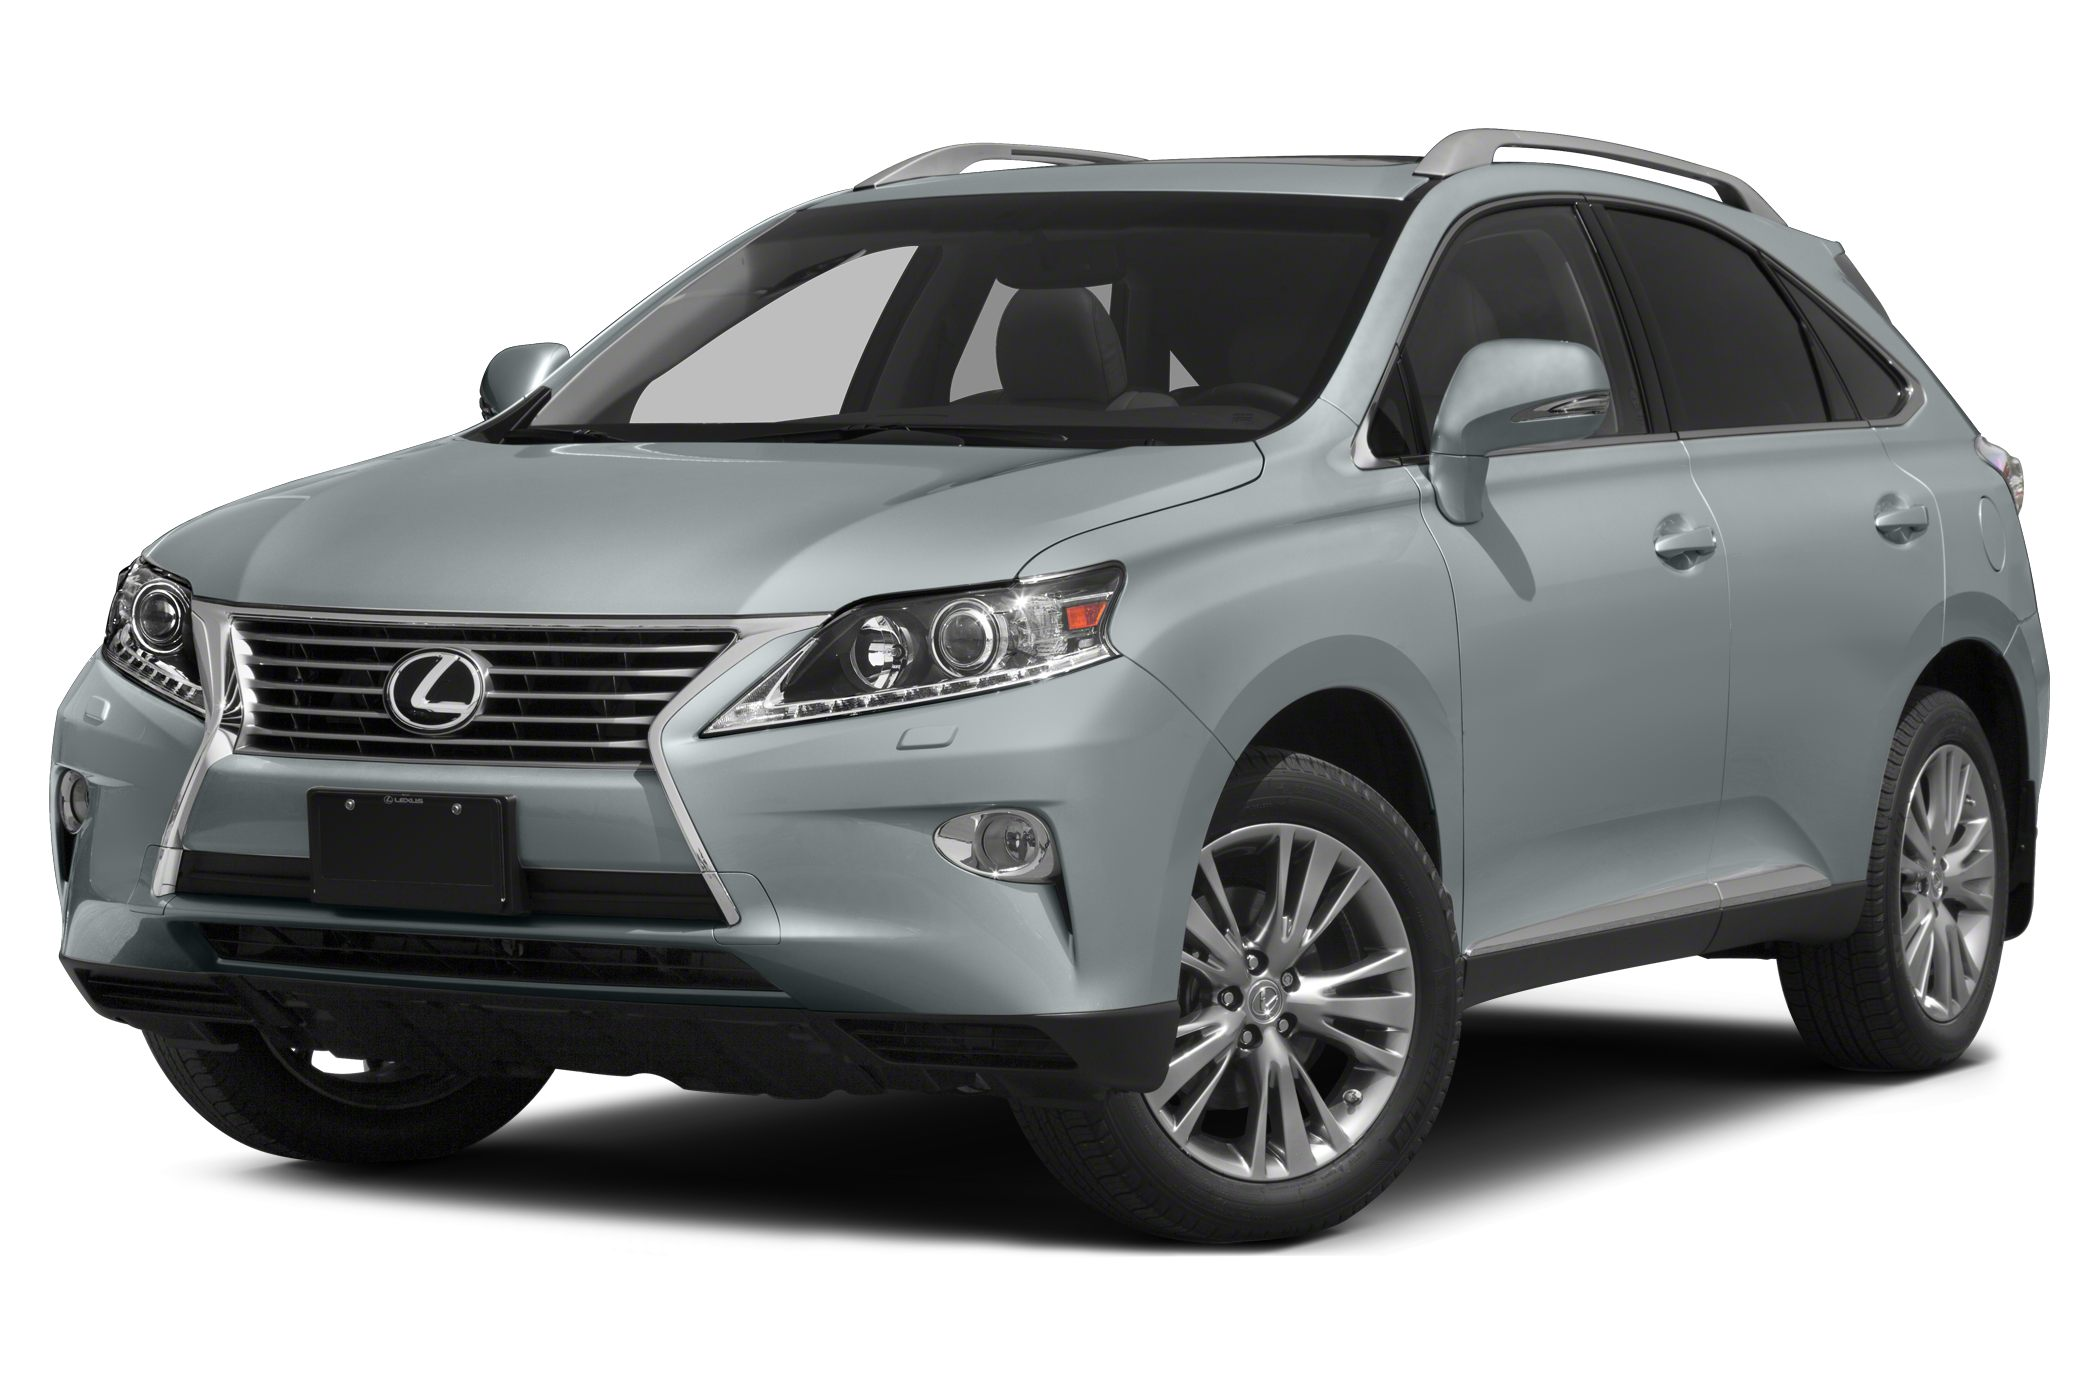 USC40LES122A021001 Interesting Info About Lexus Dealers In Delaware